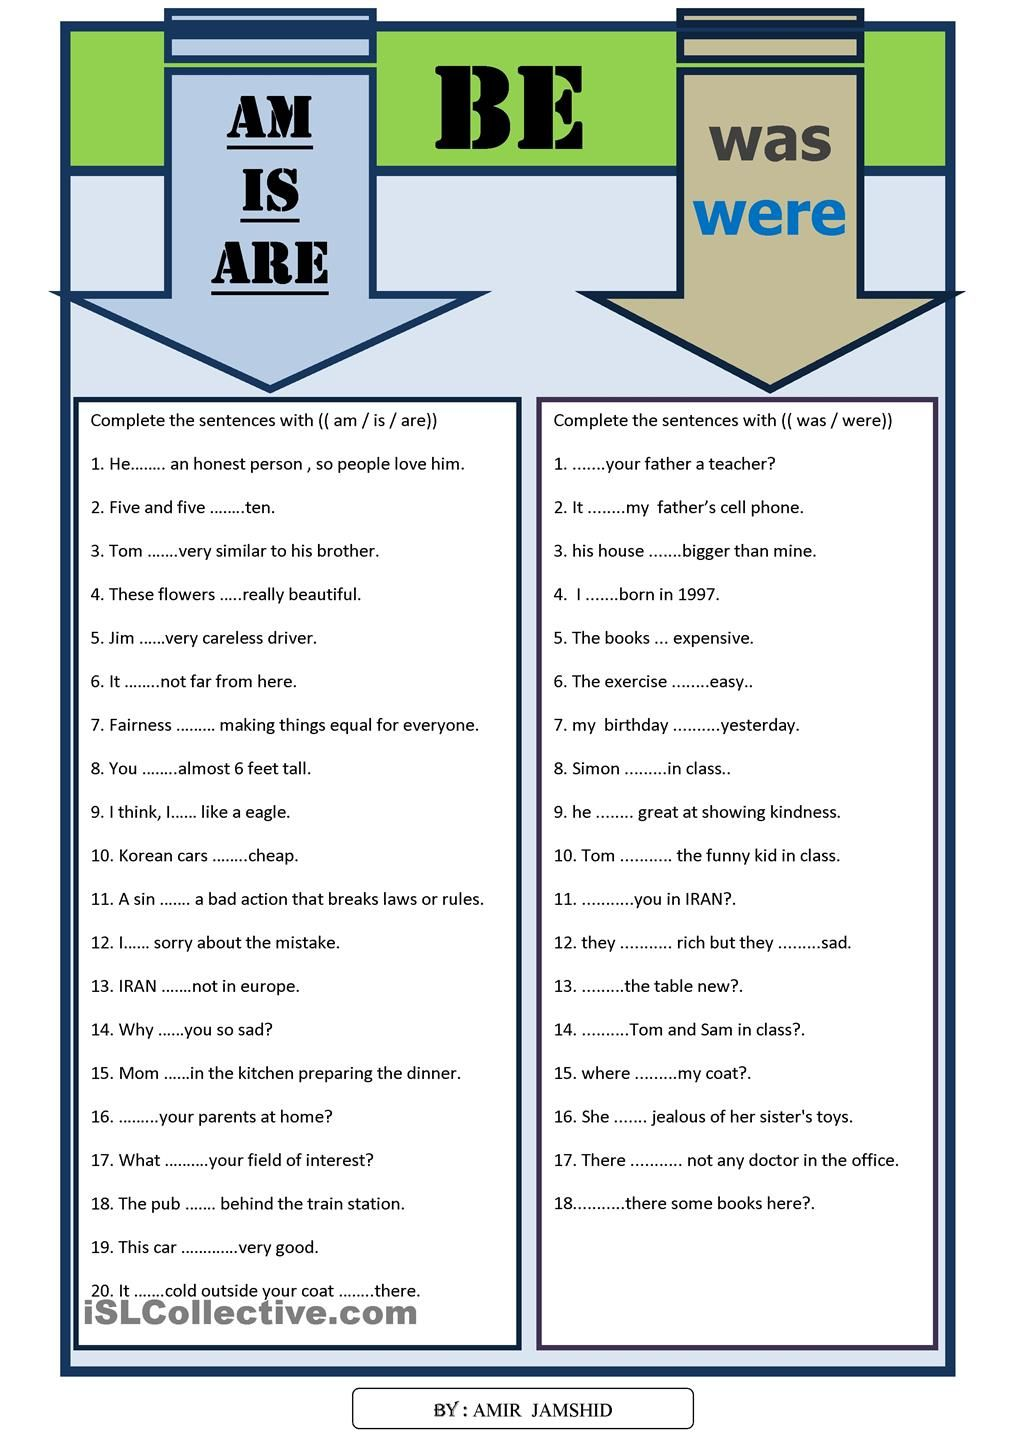 AM/ IS / ARE/ WAS /WERE English lessons, Learn english